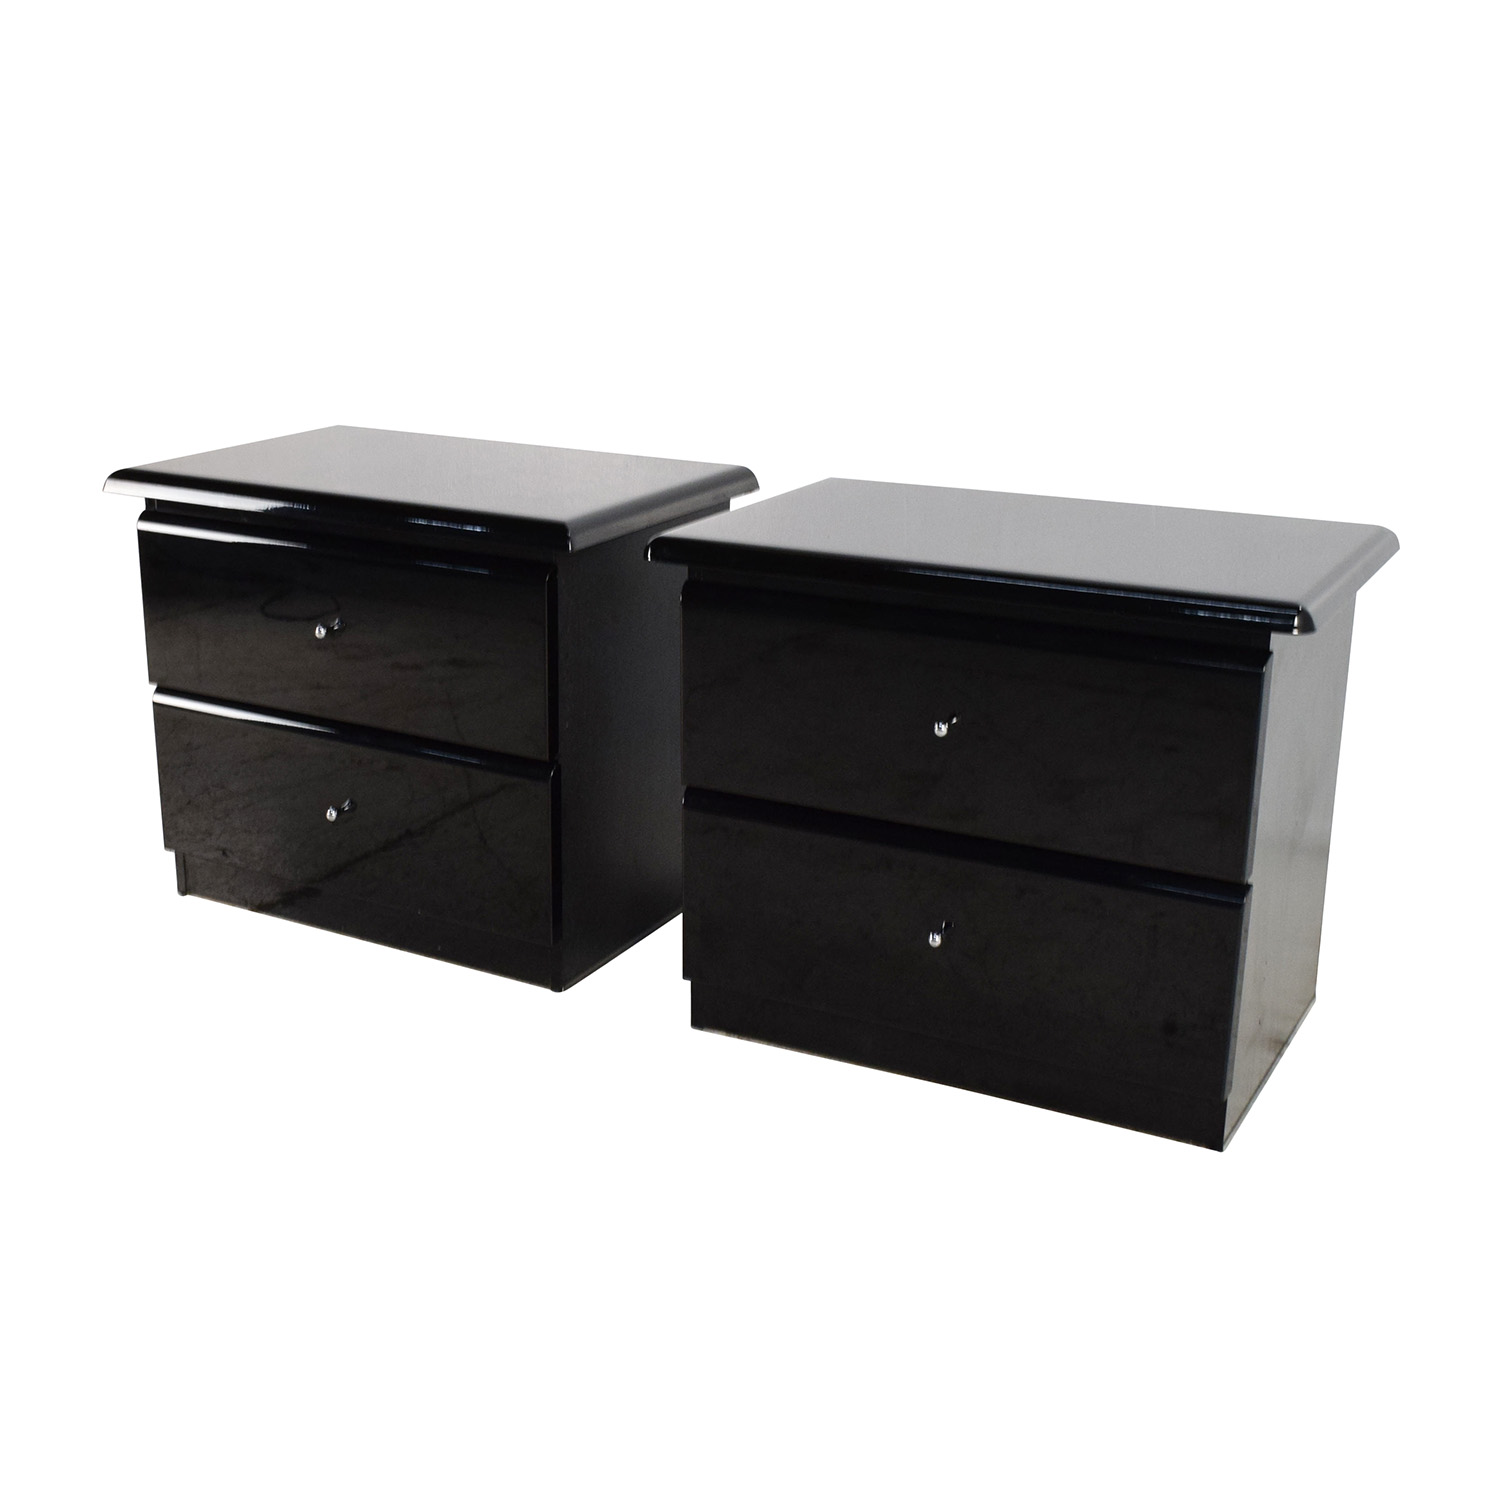 off  bloomingdales bloomingdale's black lacquer nightstand  -  bloomingdale's black lacquer nightstand pair  end tables